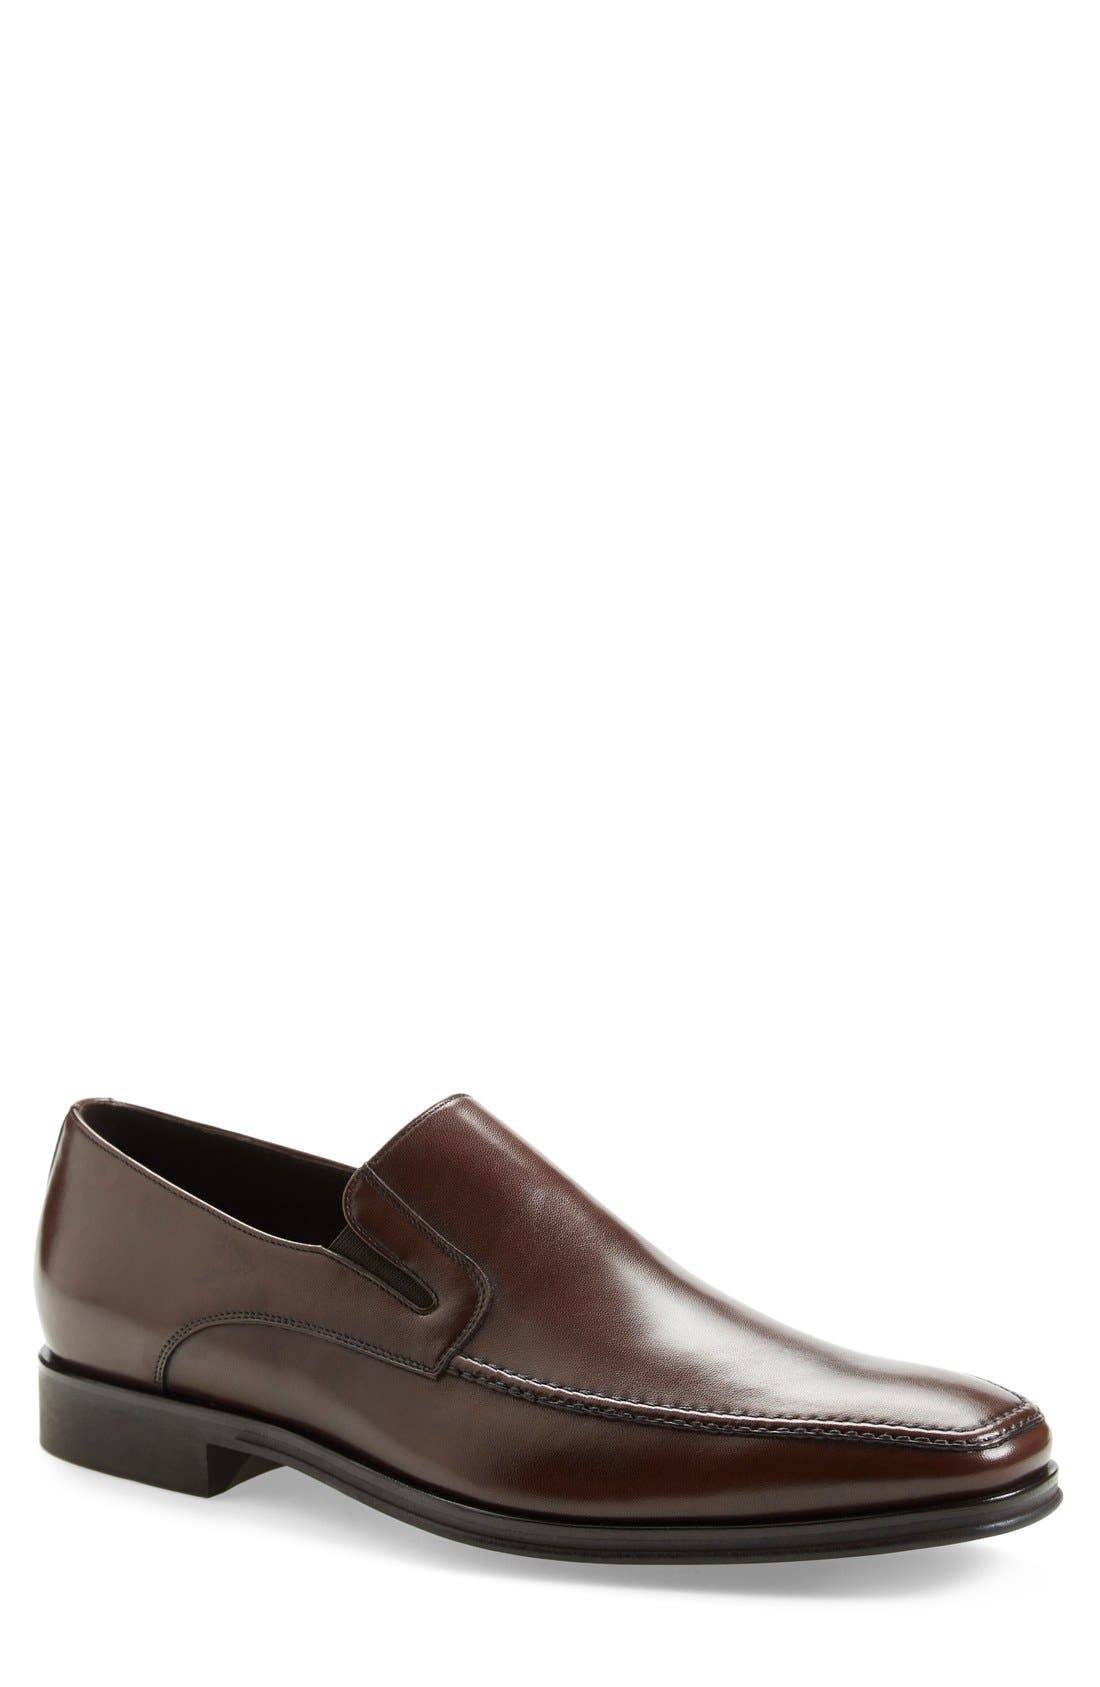 Monte Rosso Lucca Nappa Leather Loafer (Men) (Nordstrom Exclusive)